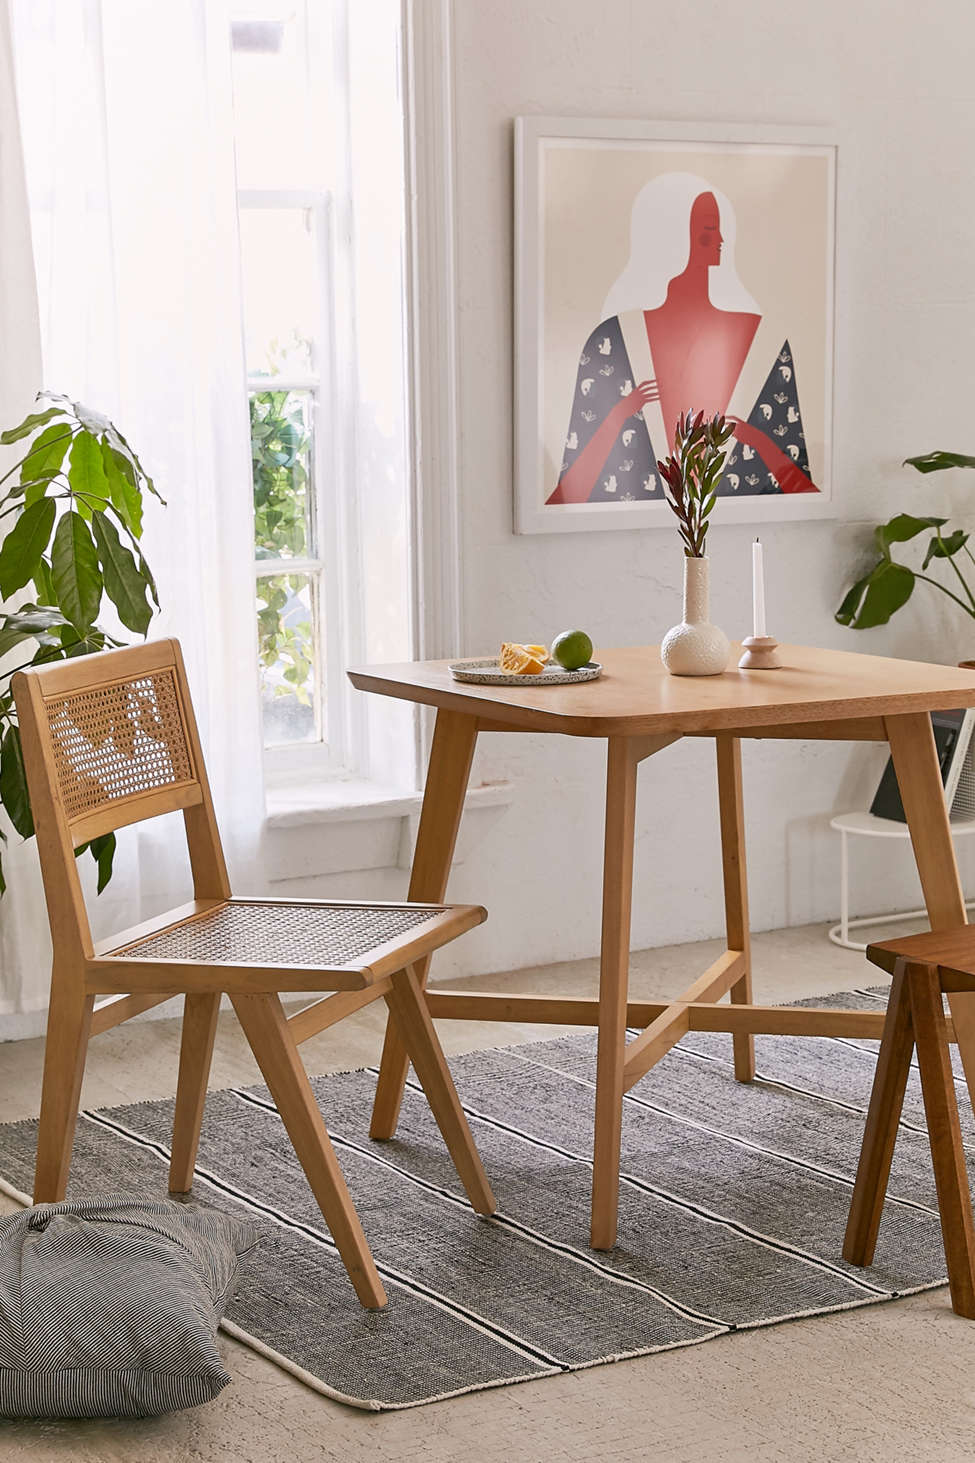 Slide View: 1: Marte Dining Table